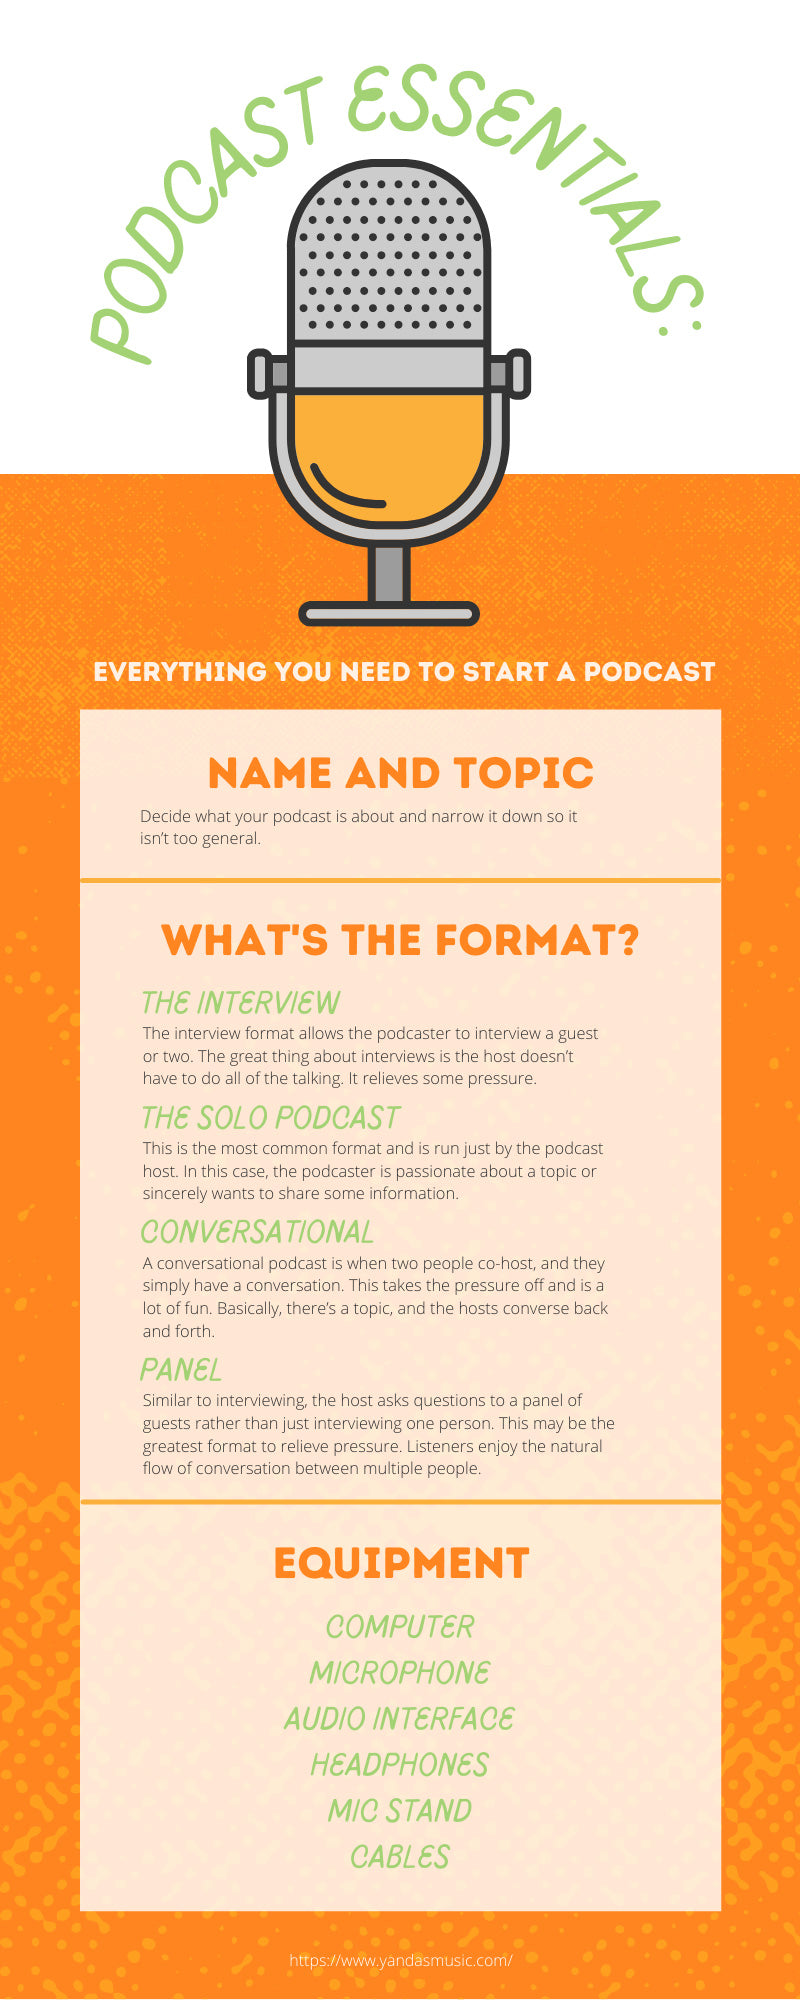 Podcast Essentials: Everything You Need To Start a Podcast